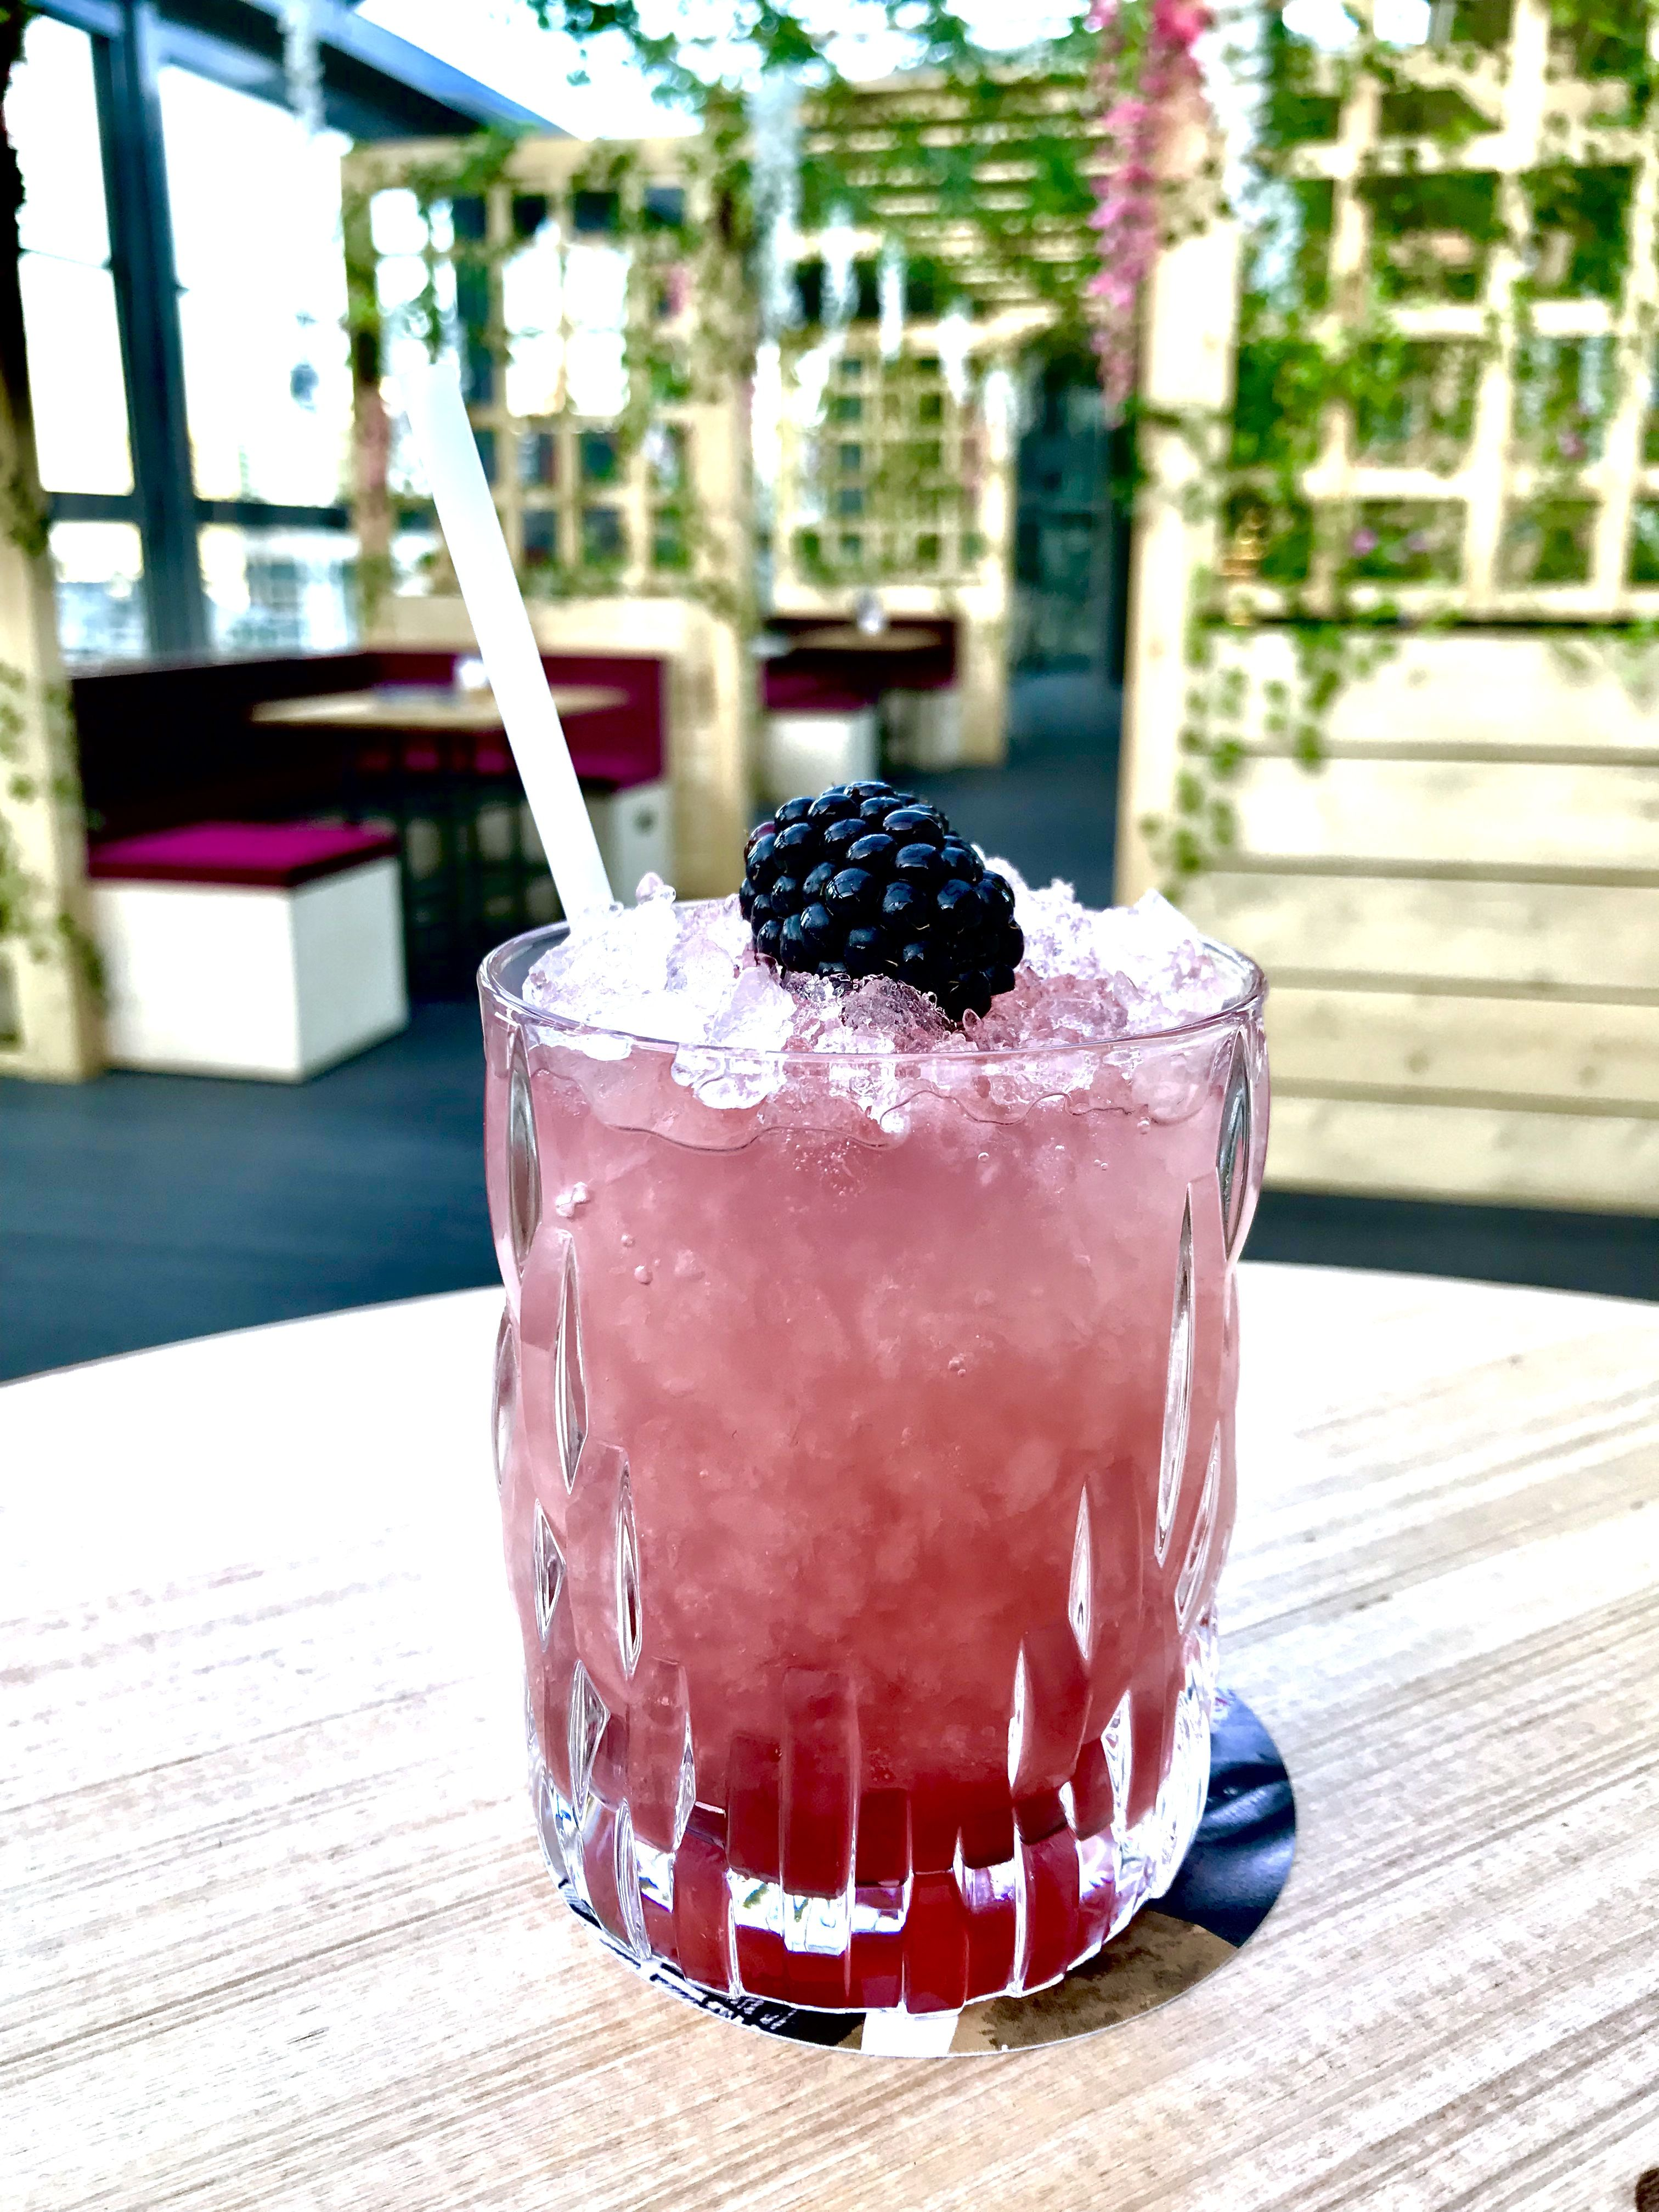 A Bramble London Rooftop Bar London Rooftops Serving Food